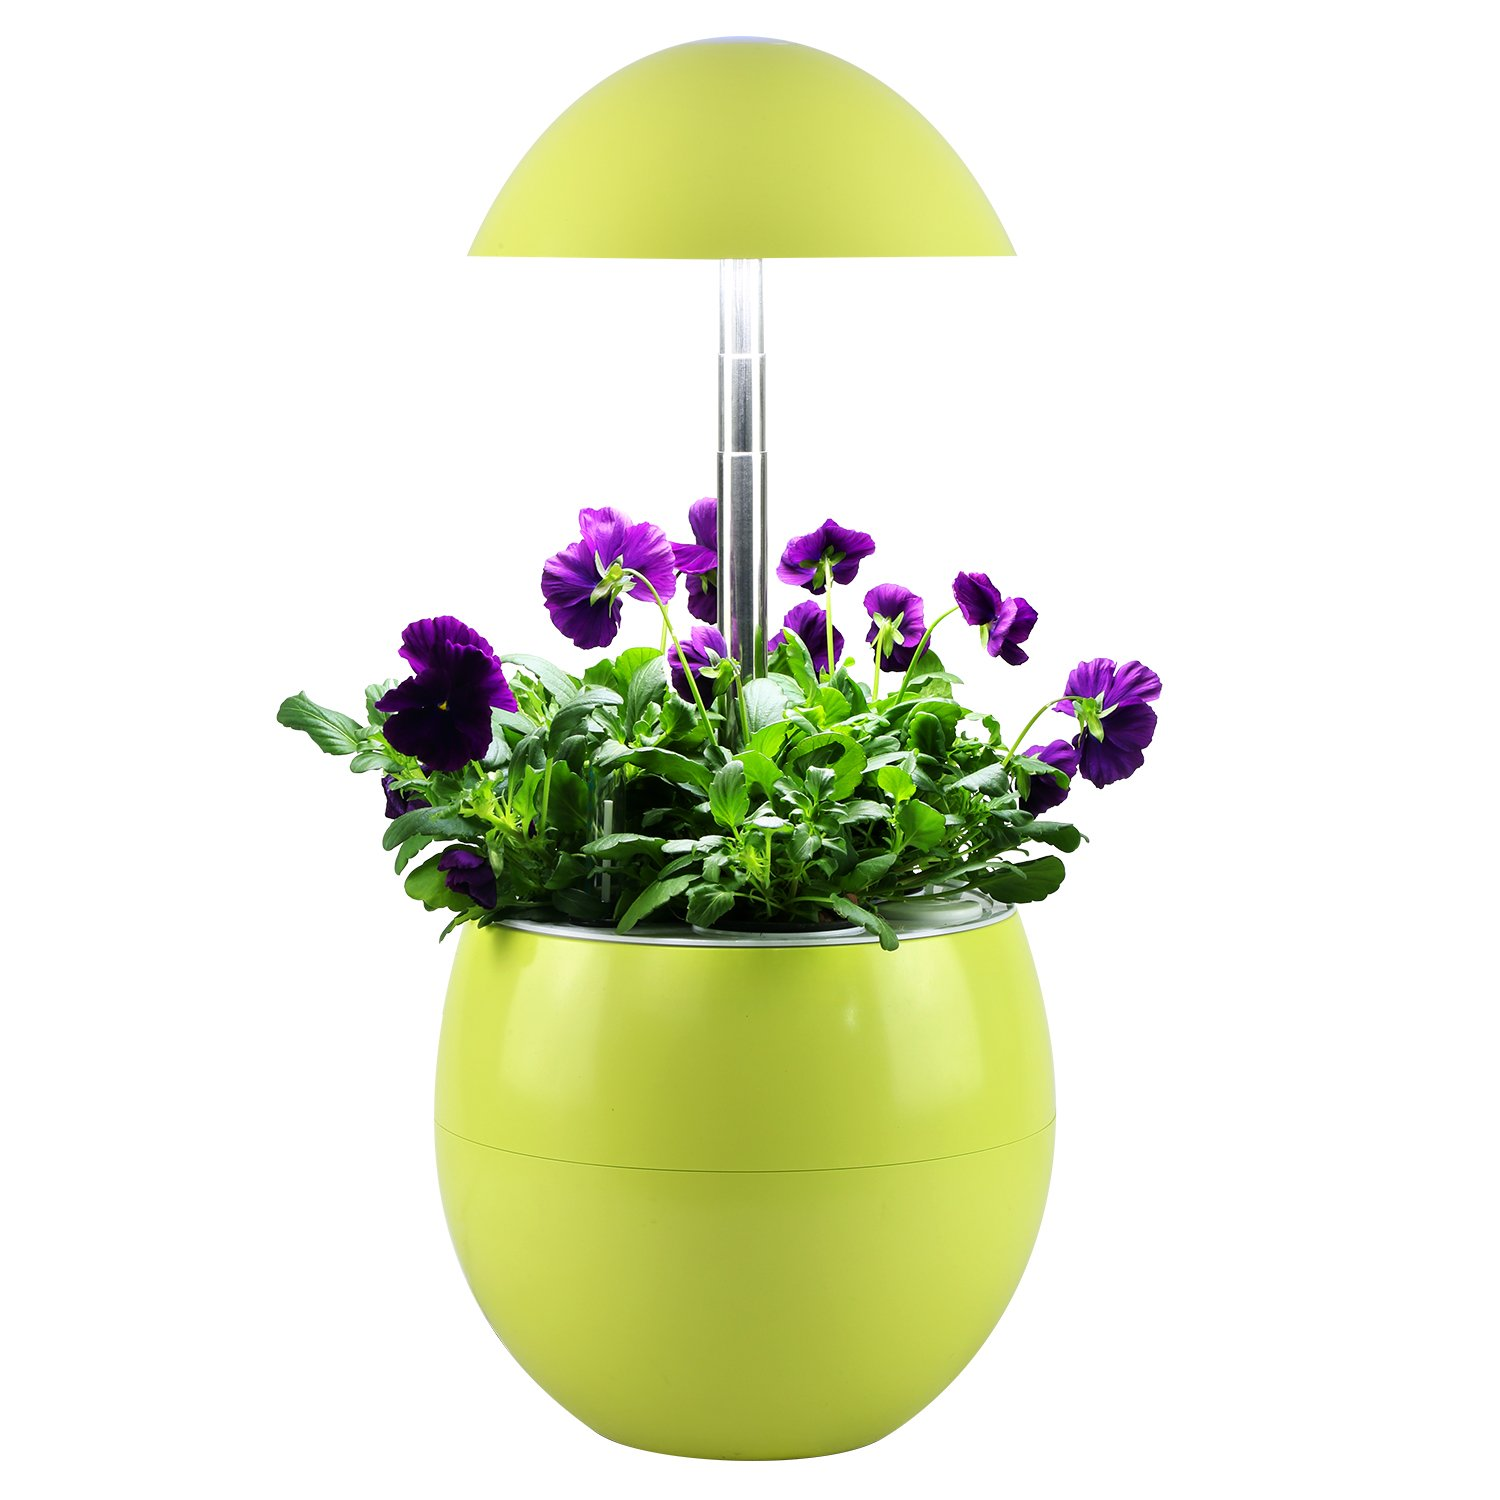 Decorative Indoor Garden Lamp Hydroponic Self Watering System, Complete Planter Pod Kit, Seeds & Led Light Grows Herbs, Flowers, Succulents in Kitchen or Any Room by Domestic Diva LA (Yellow)